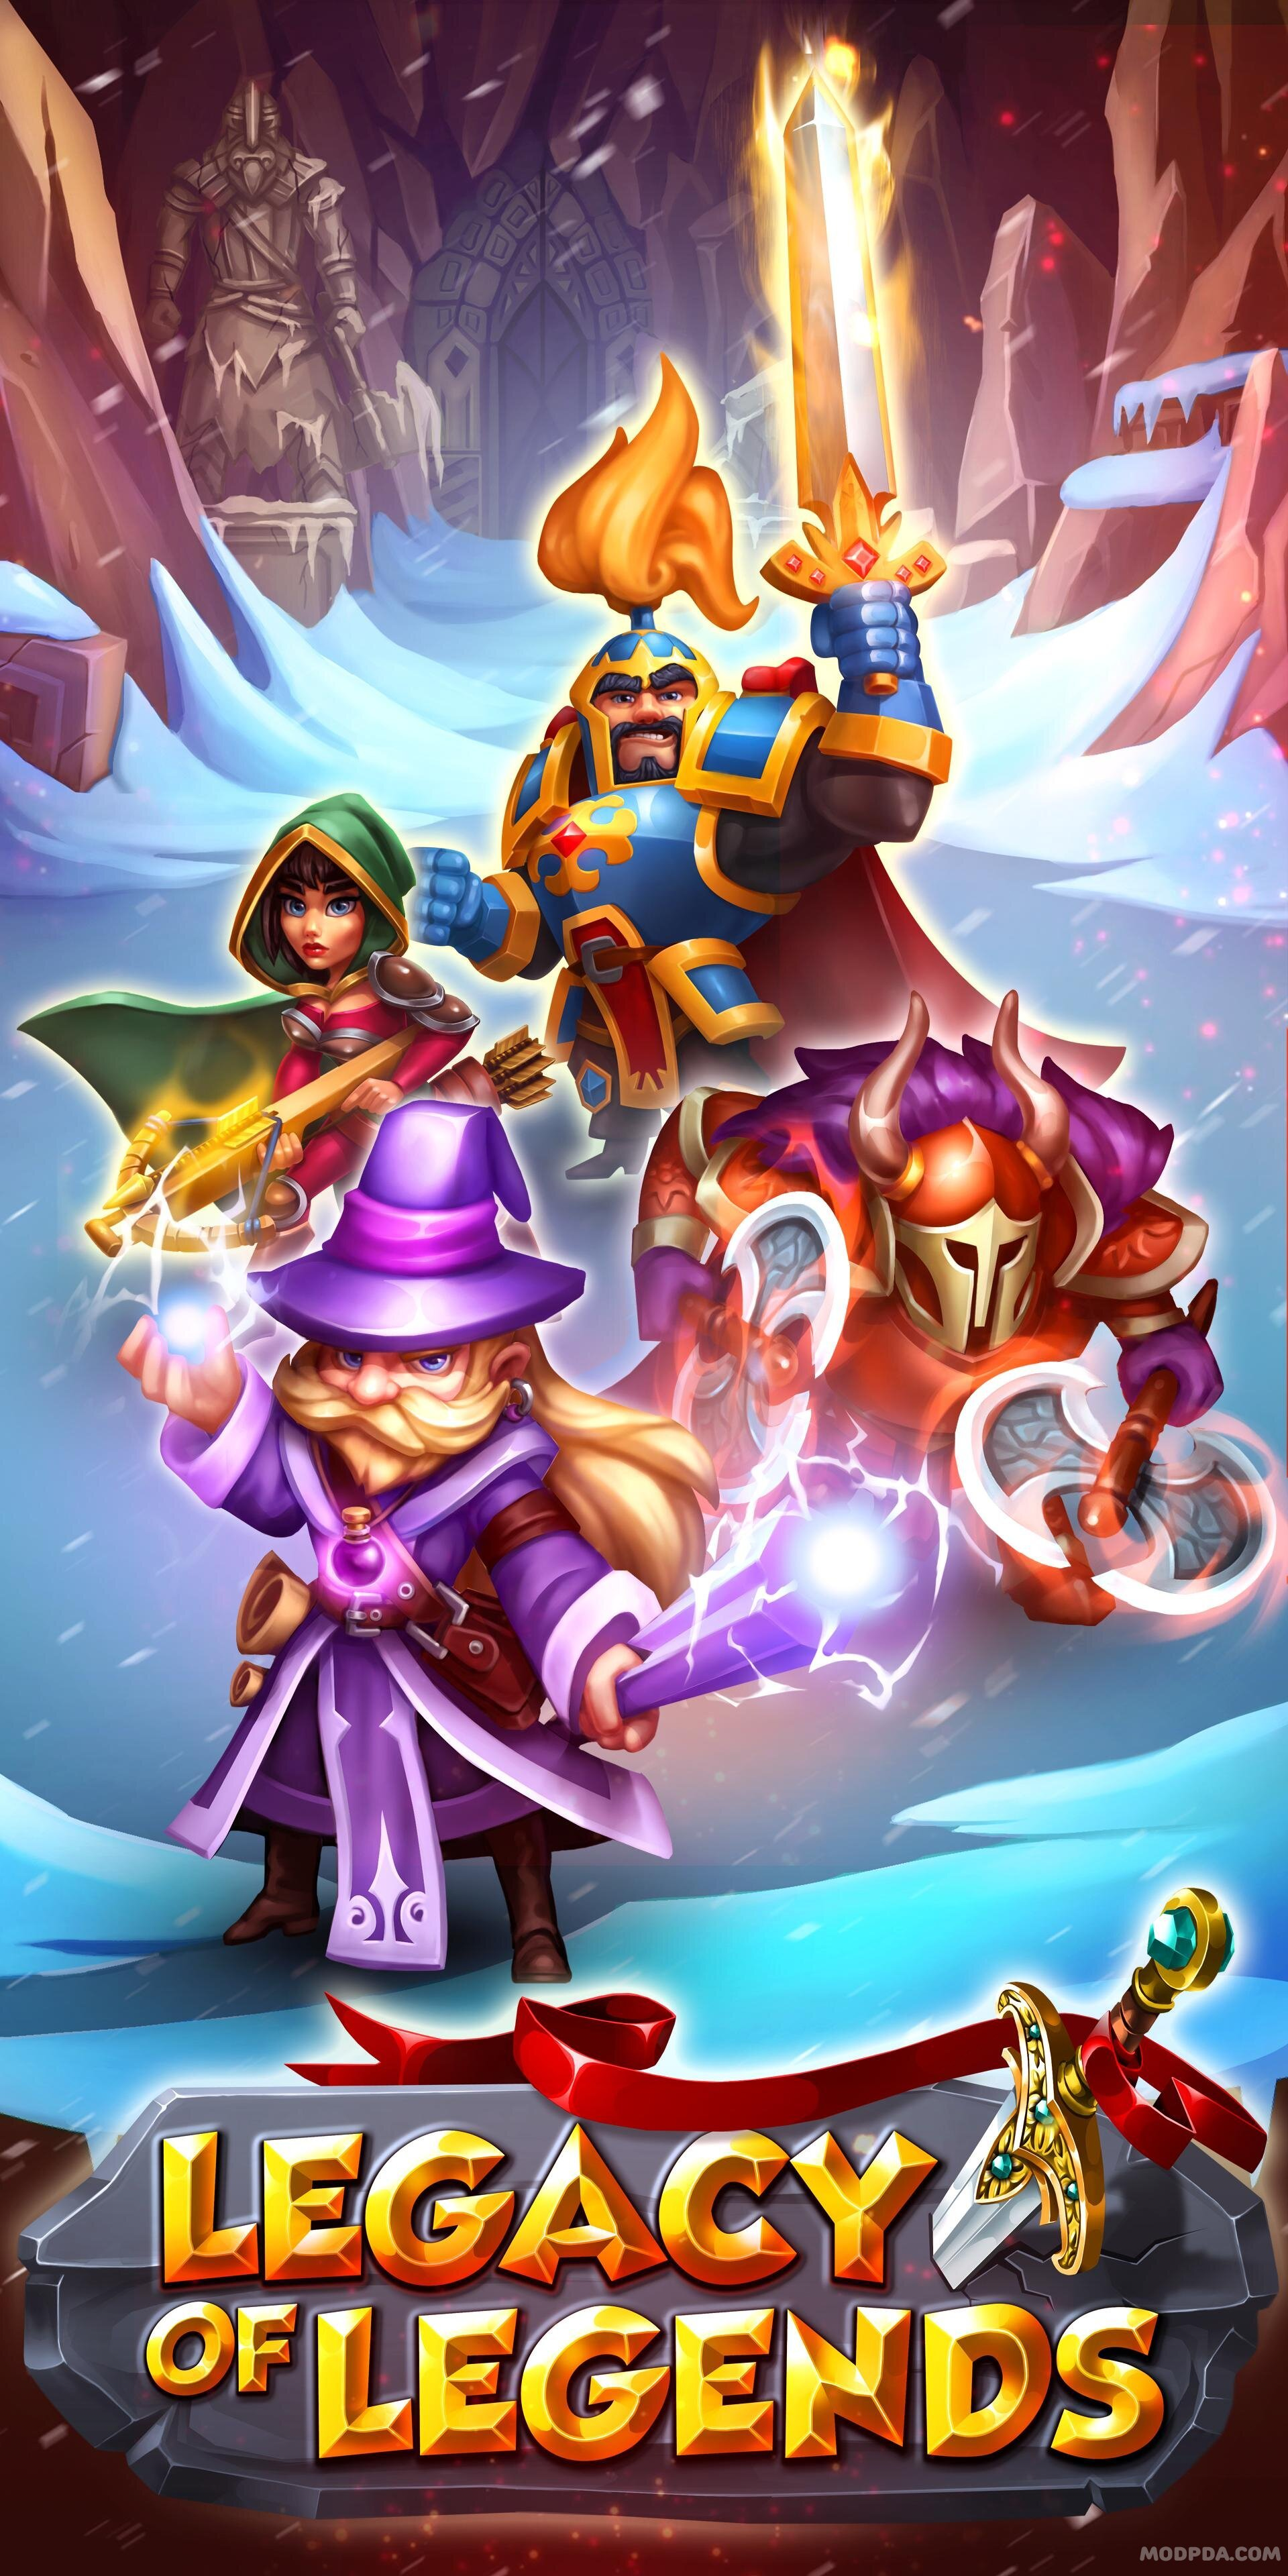 Download Legacy of Legends - Best Idle RPG HACK/MOD for Android